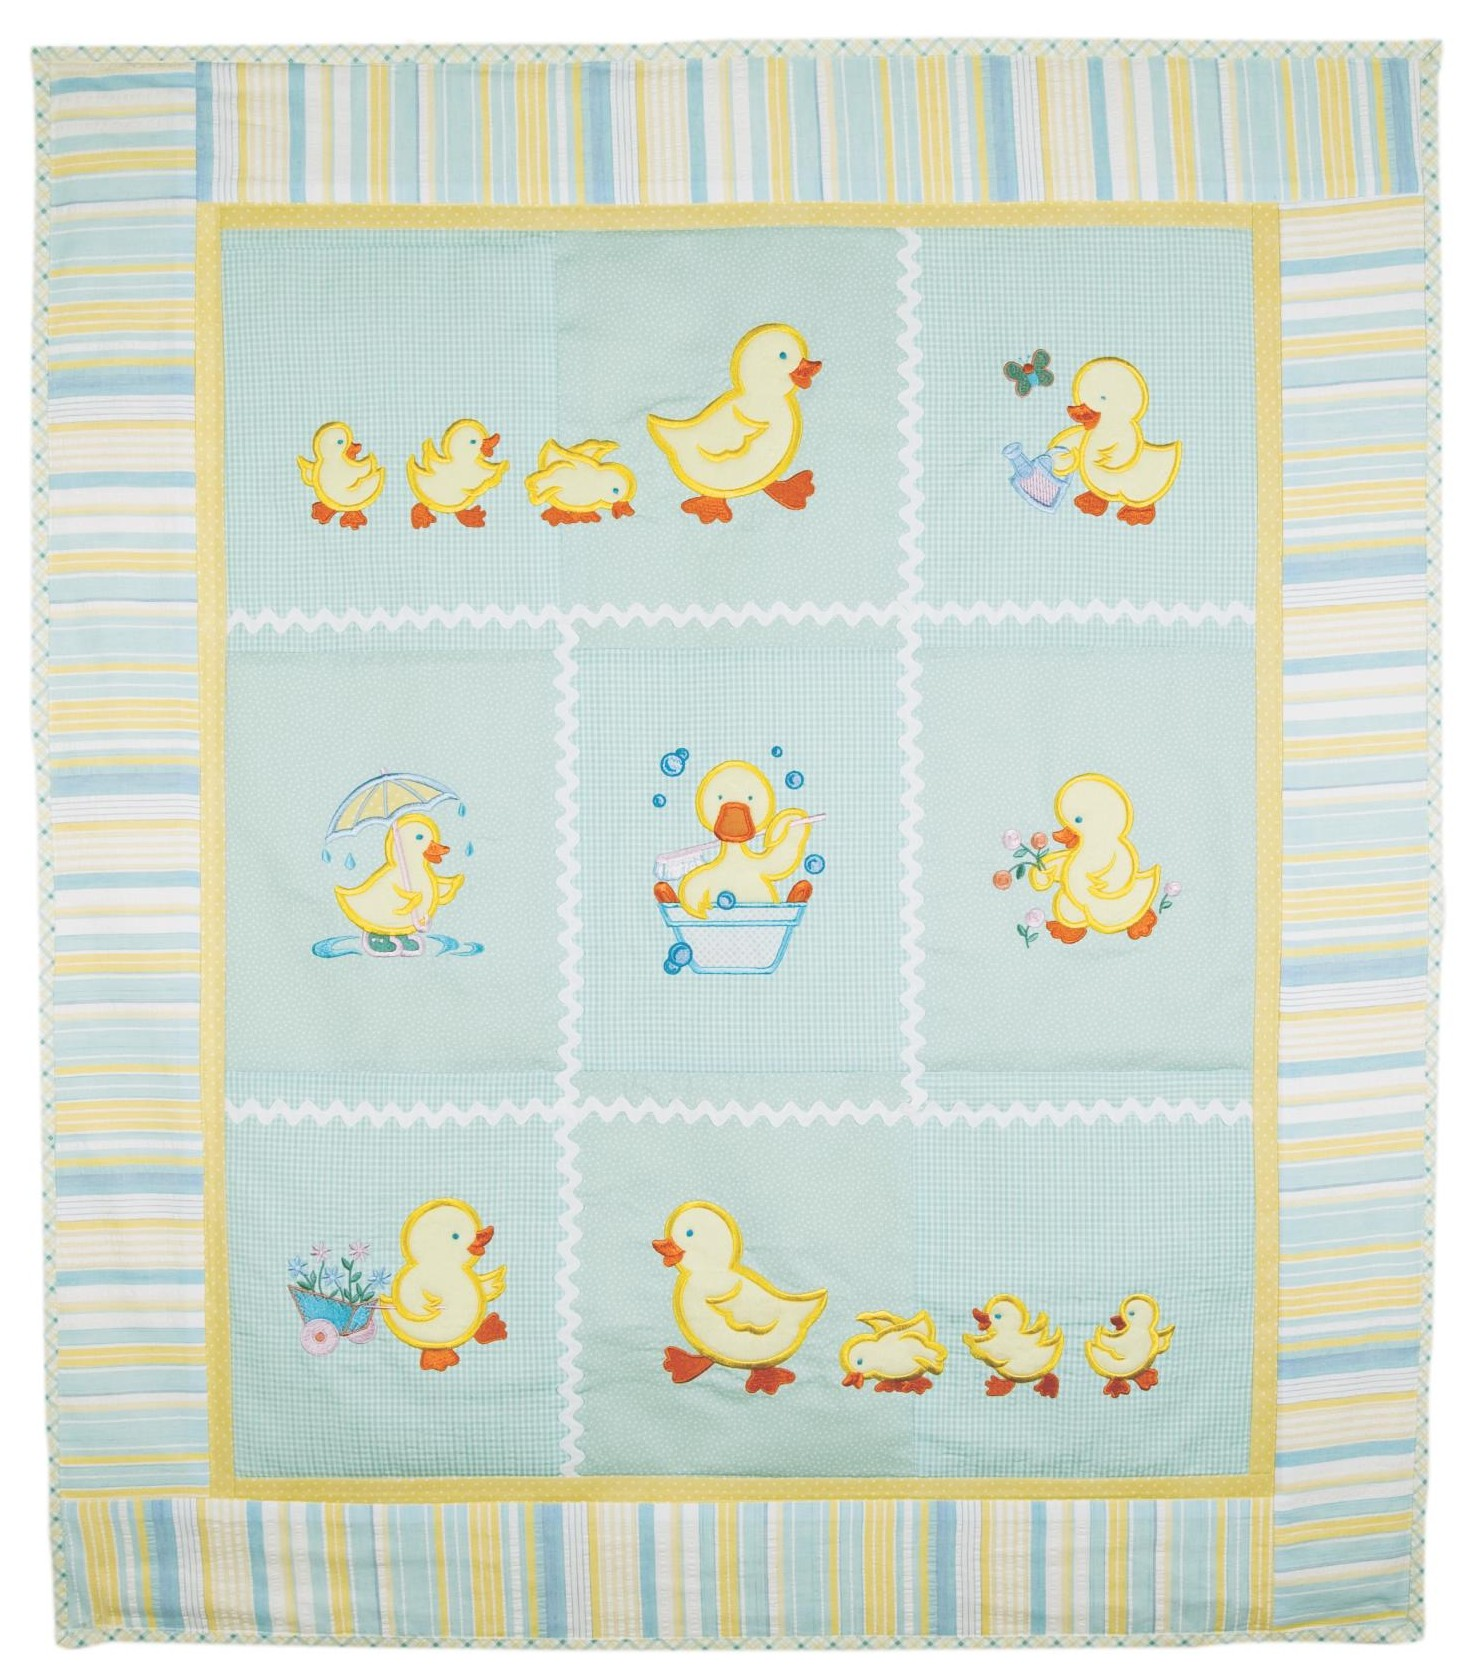 Baby Ducks Embroidery Design Collection By Anita Goodesign